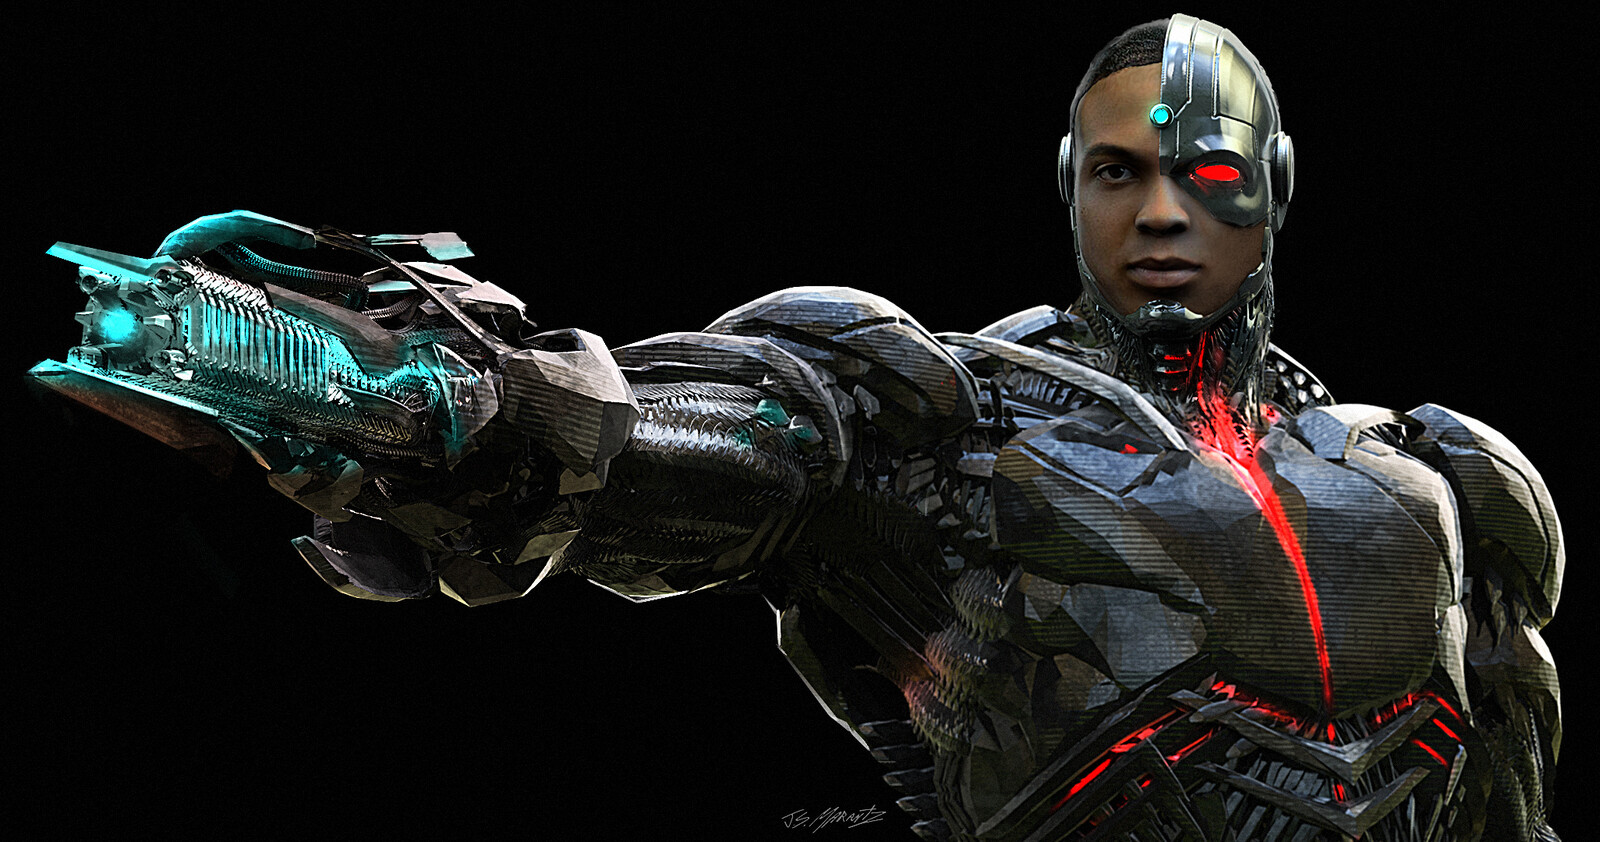 CYBORG GUN Design for Justice League